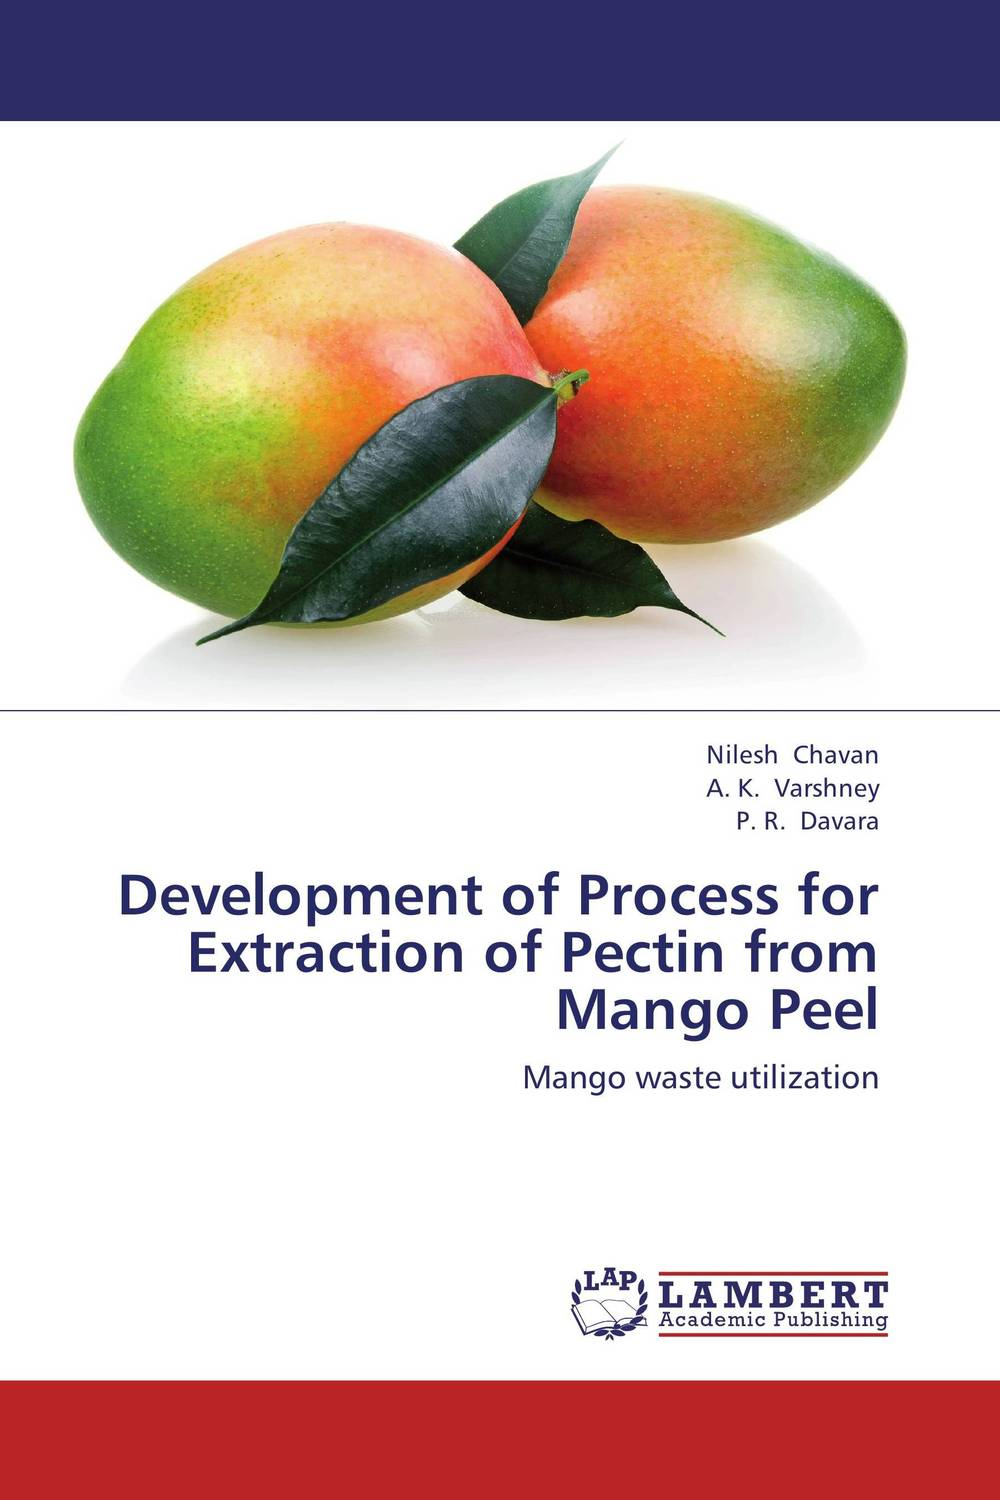 Development of Process for Extraction of Pectin from Mango Peel user preference extraction from brain signals